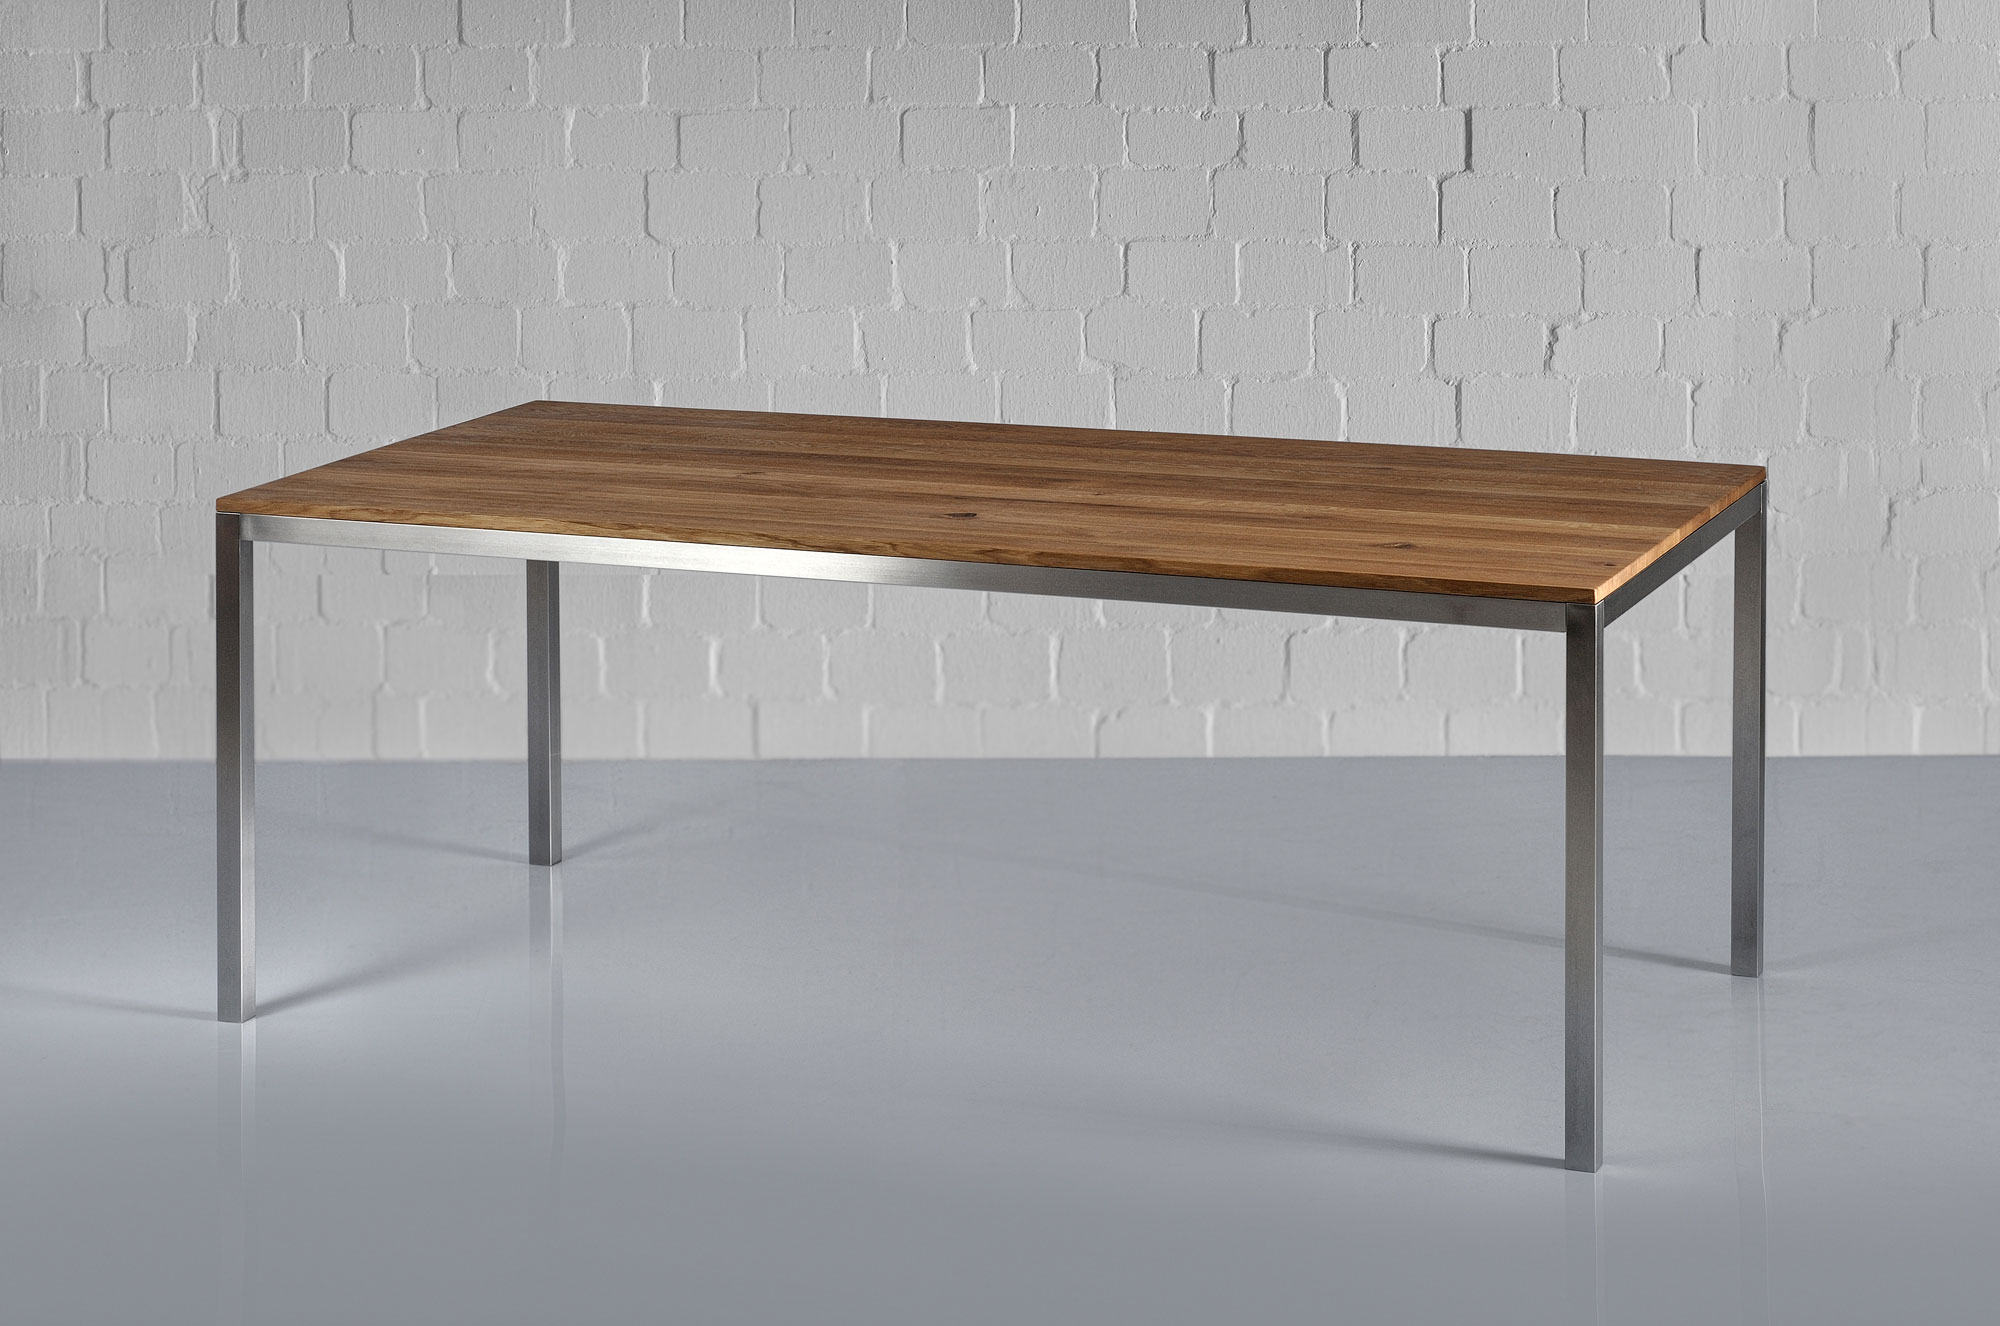 Aluminium Wood Table NOJUS 1 custom made in solid wood by vitamin design